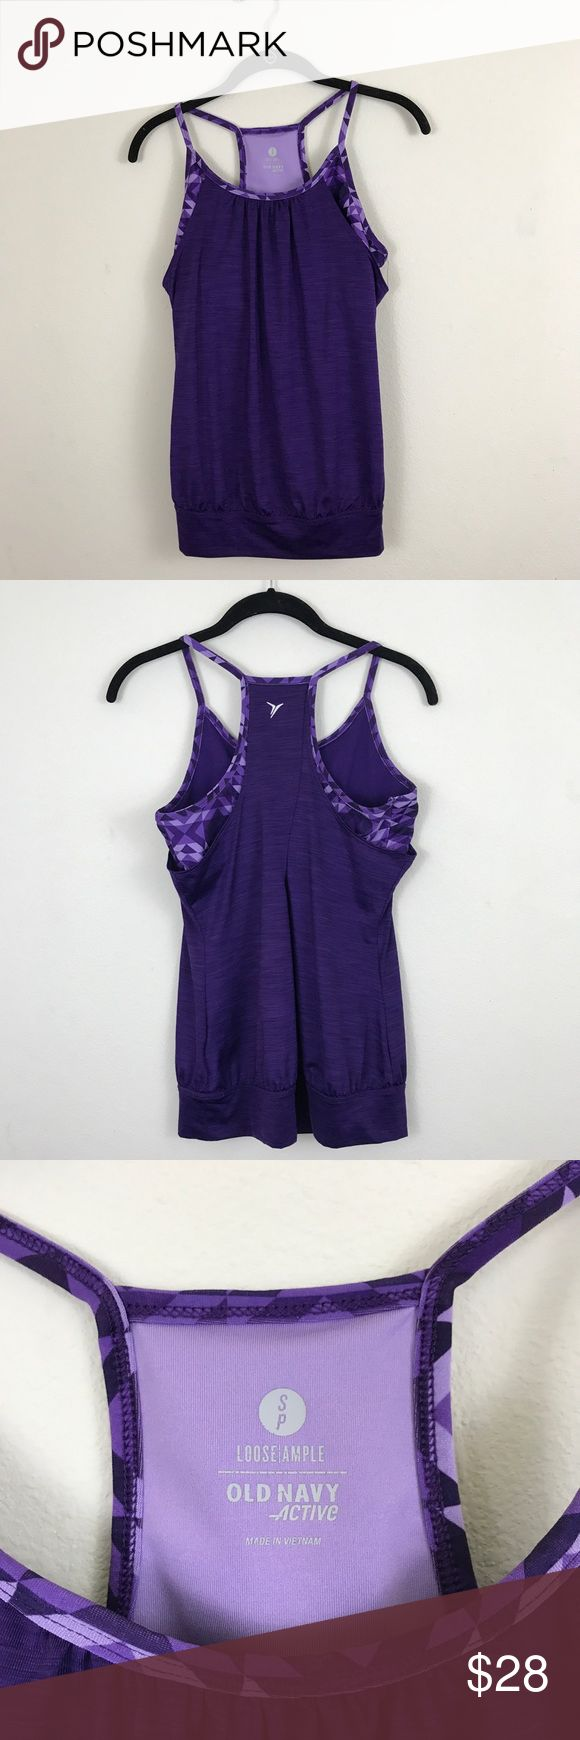 Old Navy purple athletic tank Purple strappy athletic tank with built in bra.  EUC. D Old Navy Tops Tank Tops